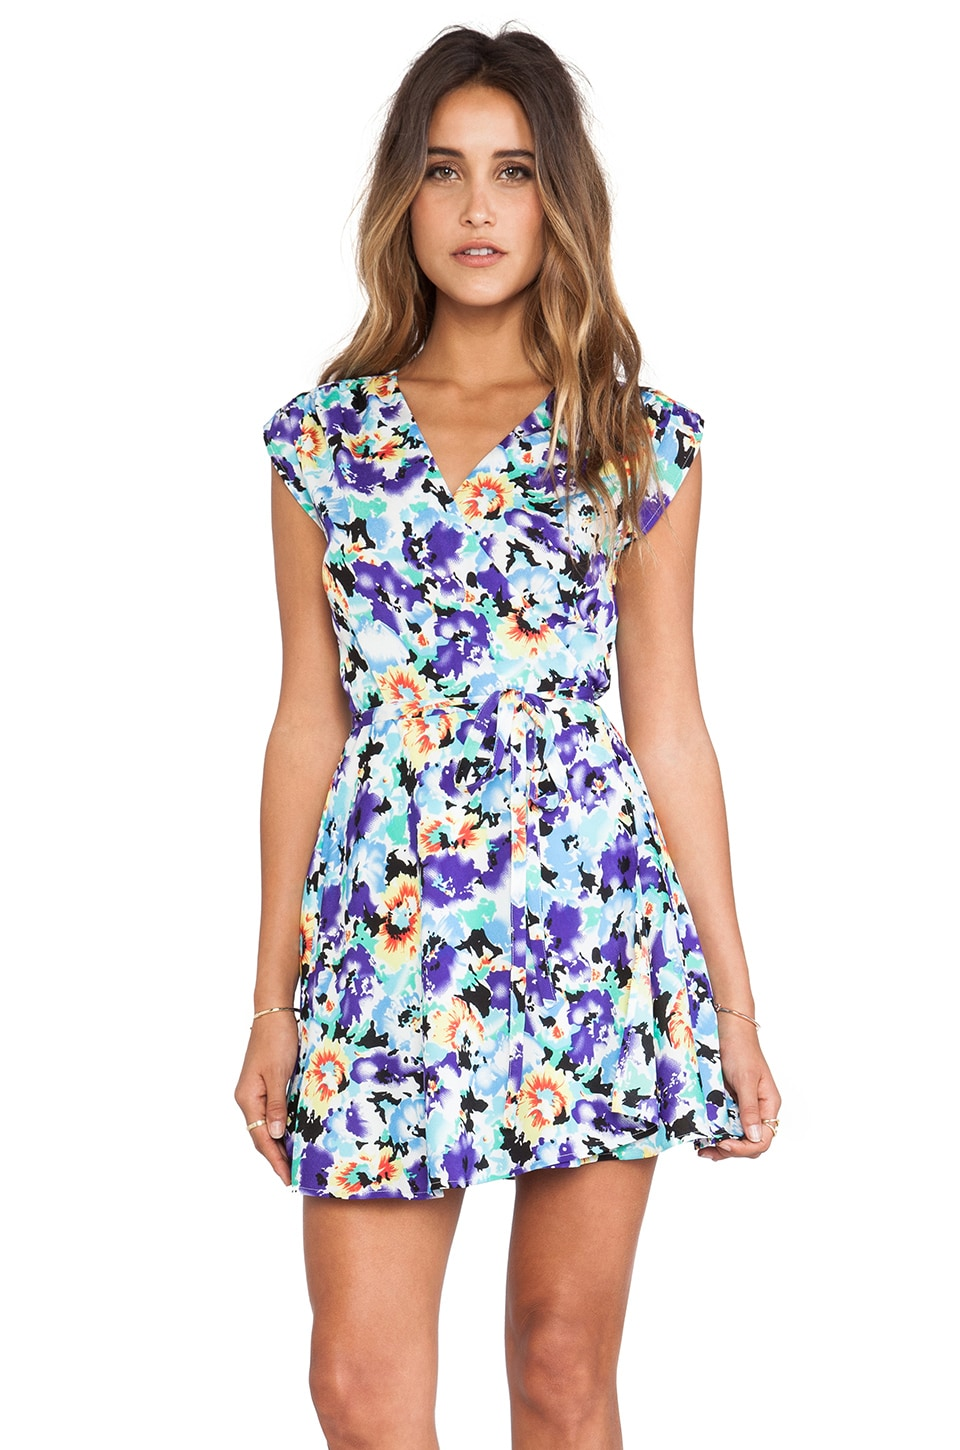 Yumi Kim Mini Wrap Dress in Vintage Starburst Print